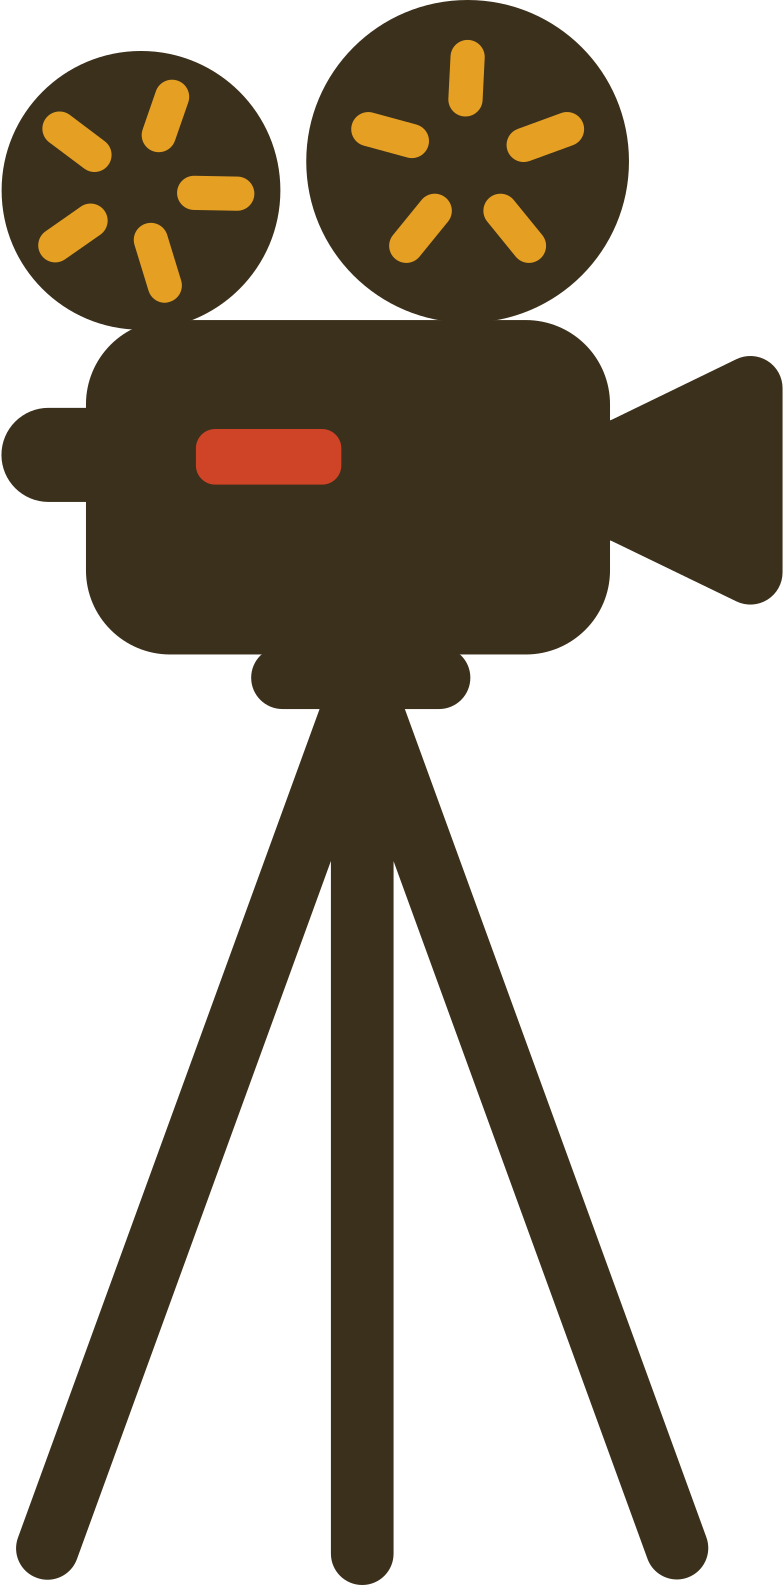 style camera movie video Vector images in PNG and SVG | Icons8 Illustrations